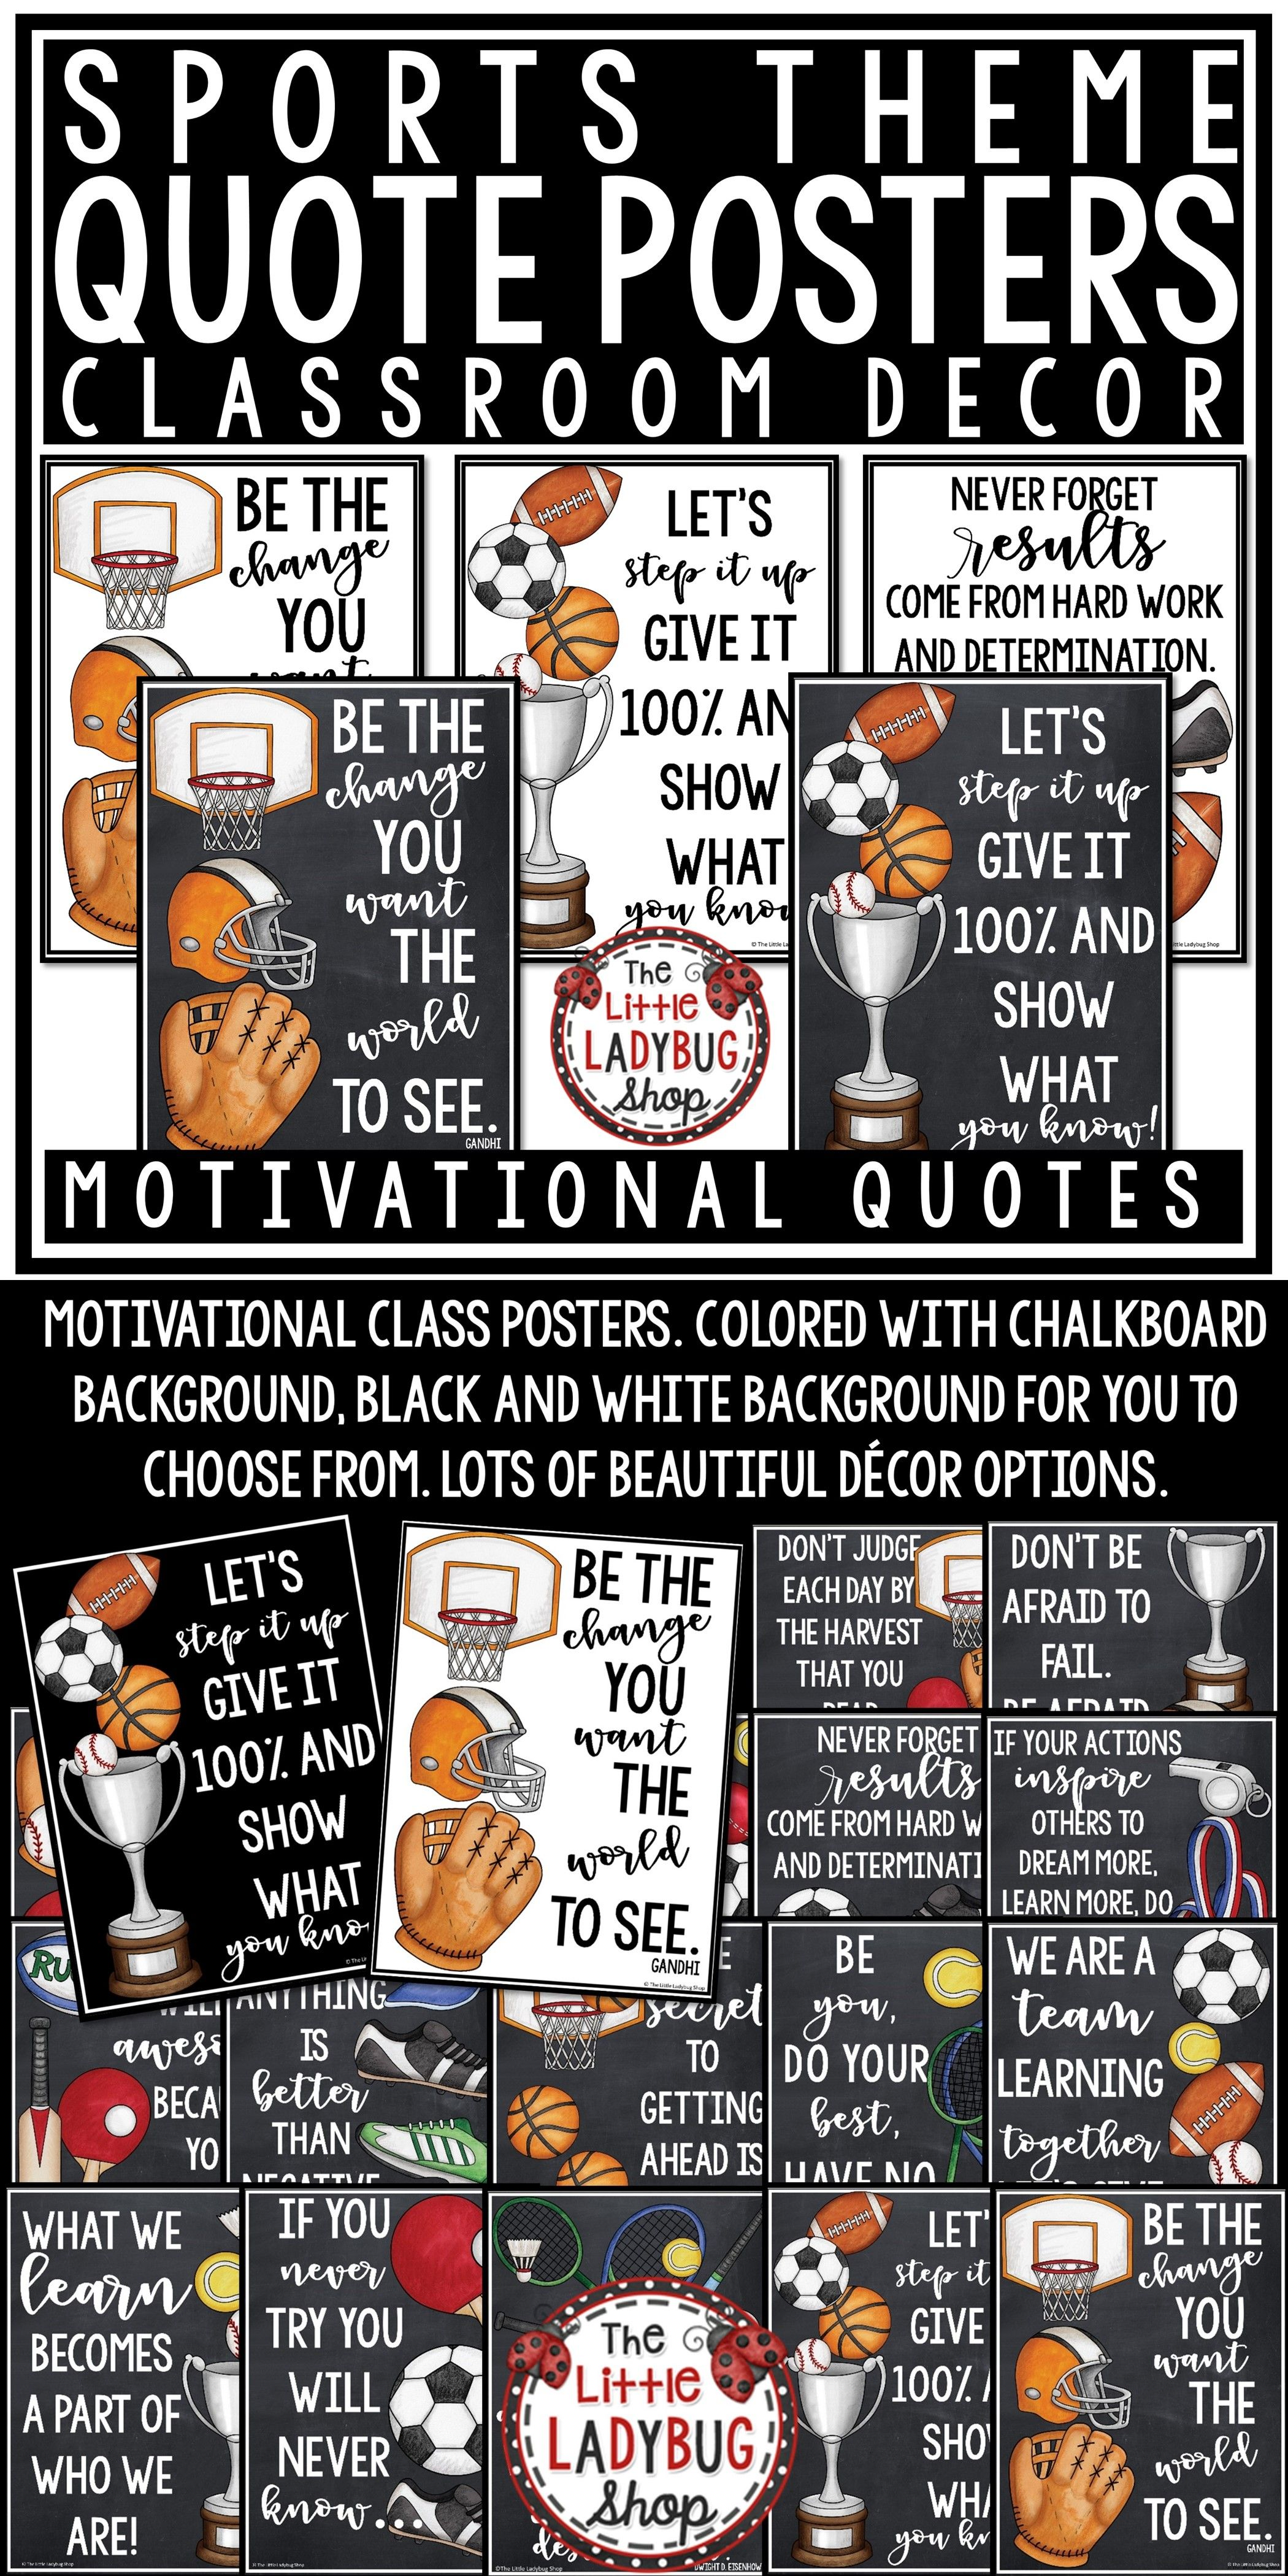 Inspirational Quotes Posters Sports Theme Classroom Decor